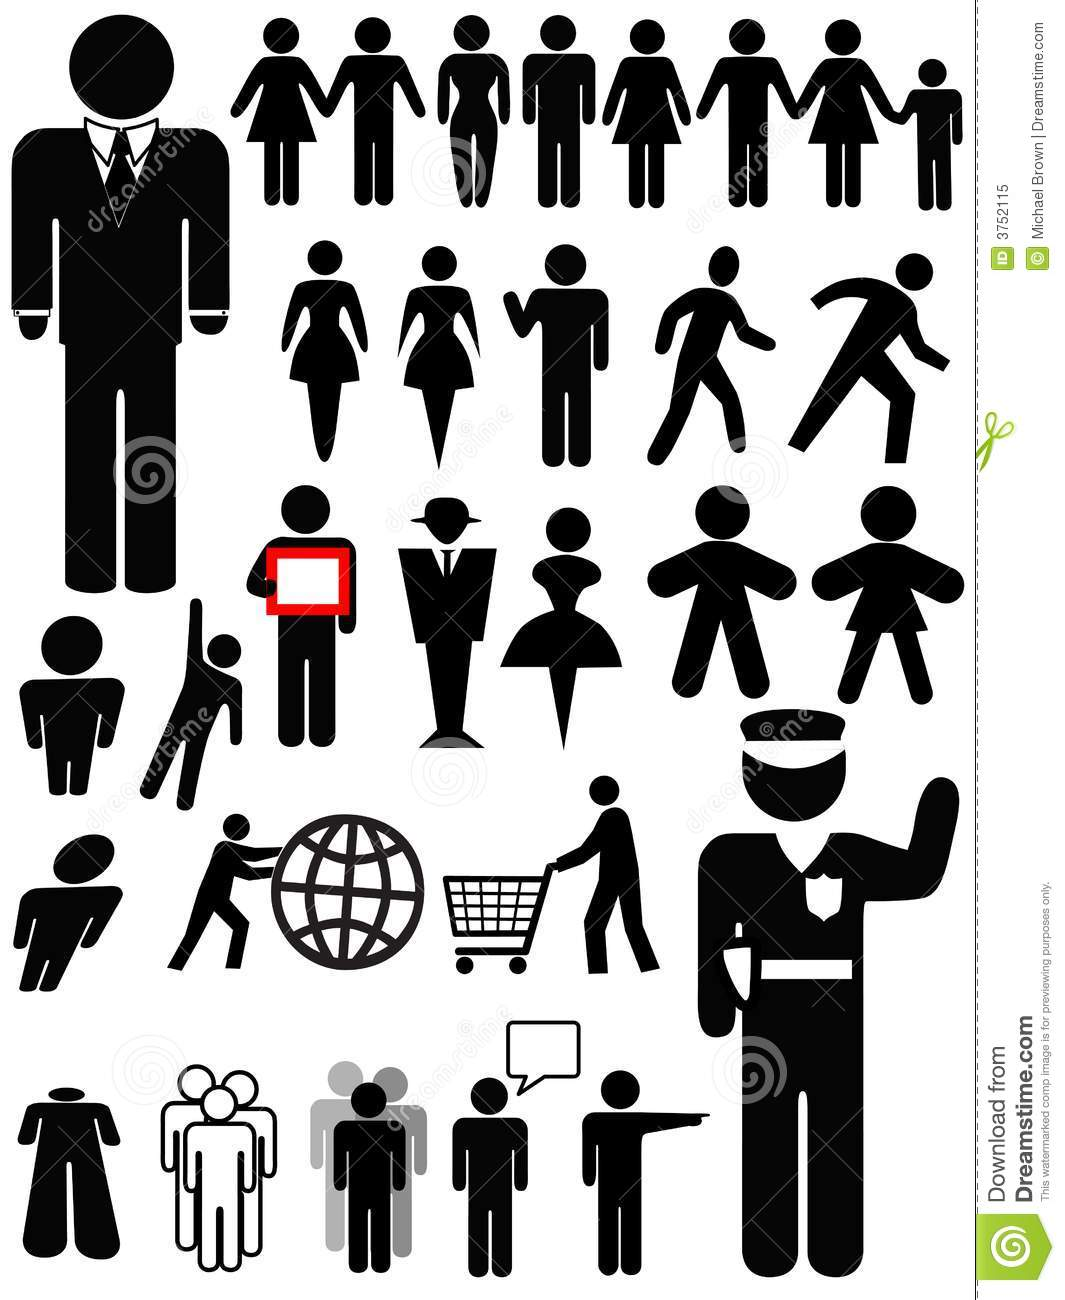 Police Officer Wallpaper Hd Symbol Person Silhouette Set Stock Vector Illustration